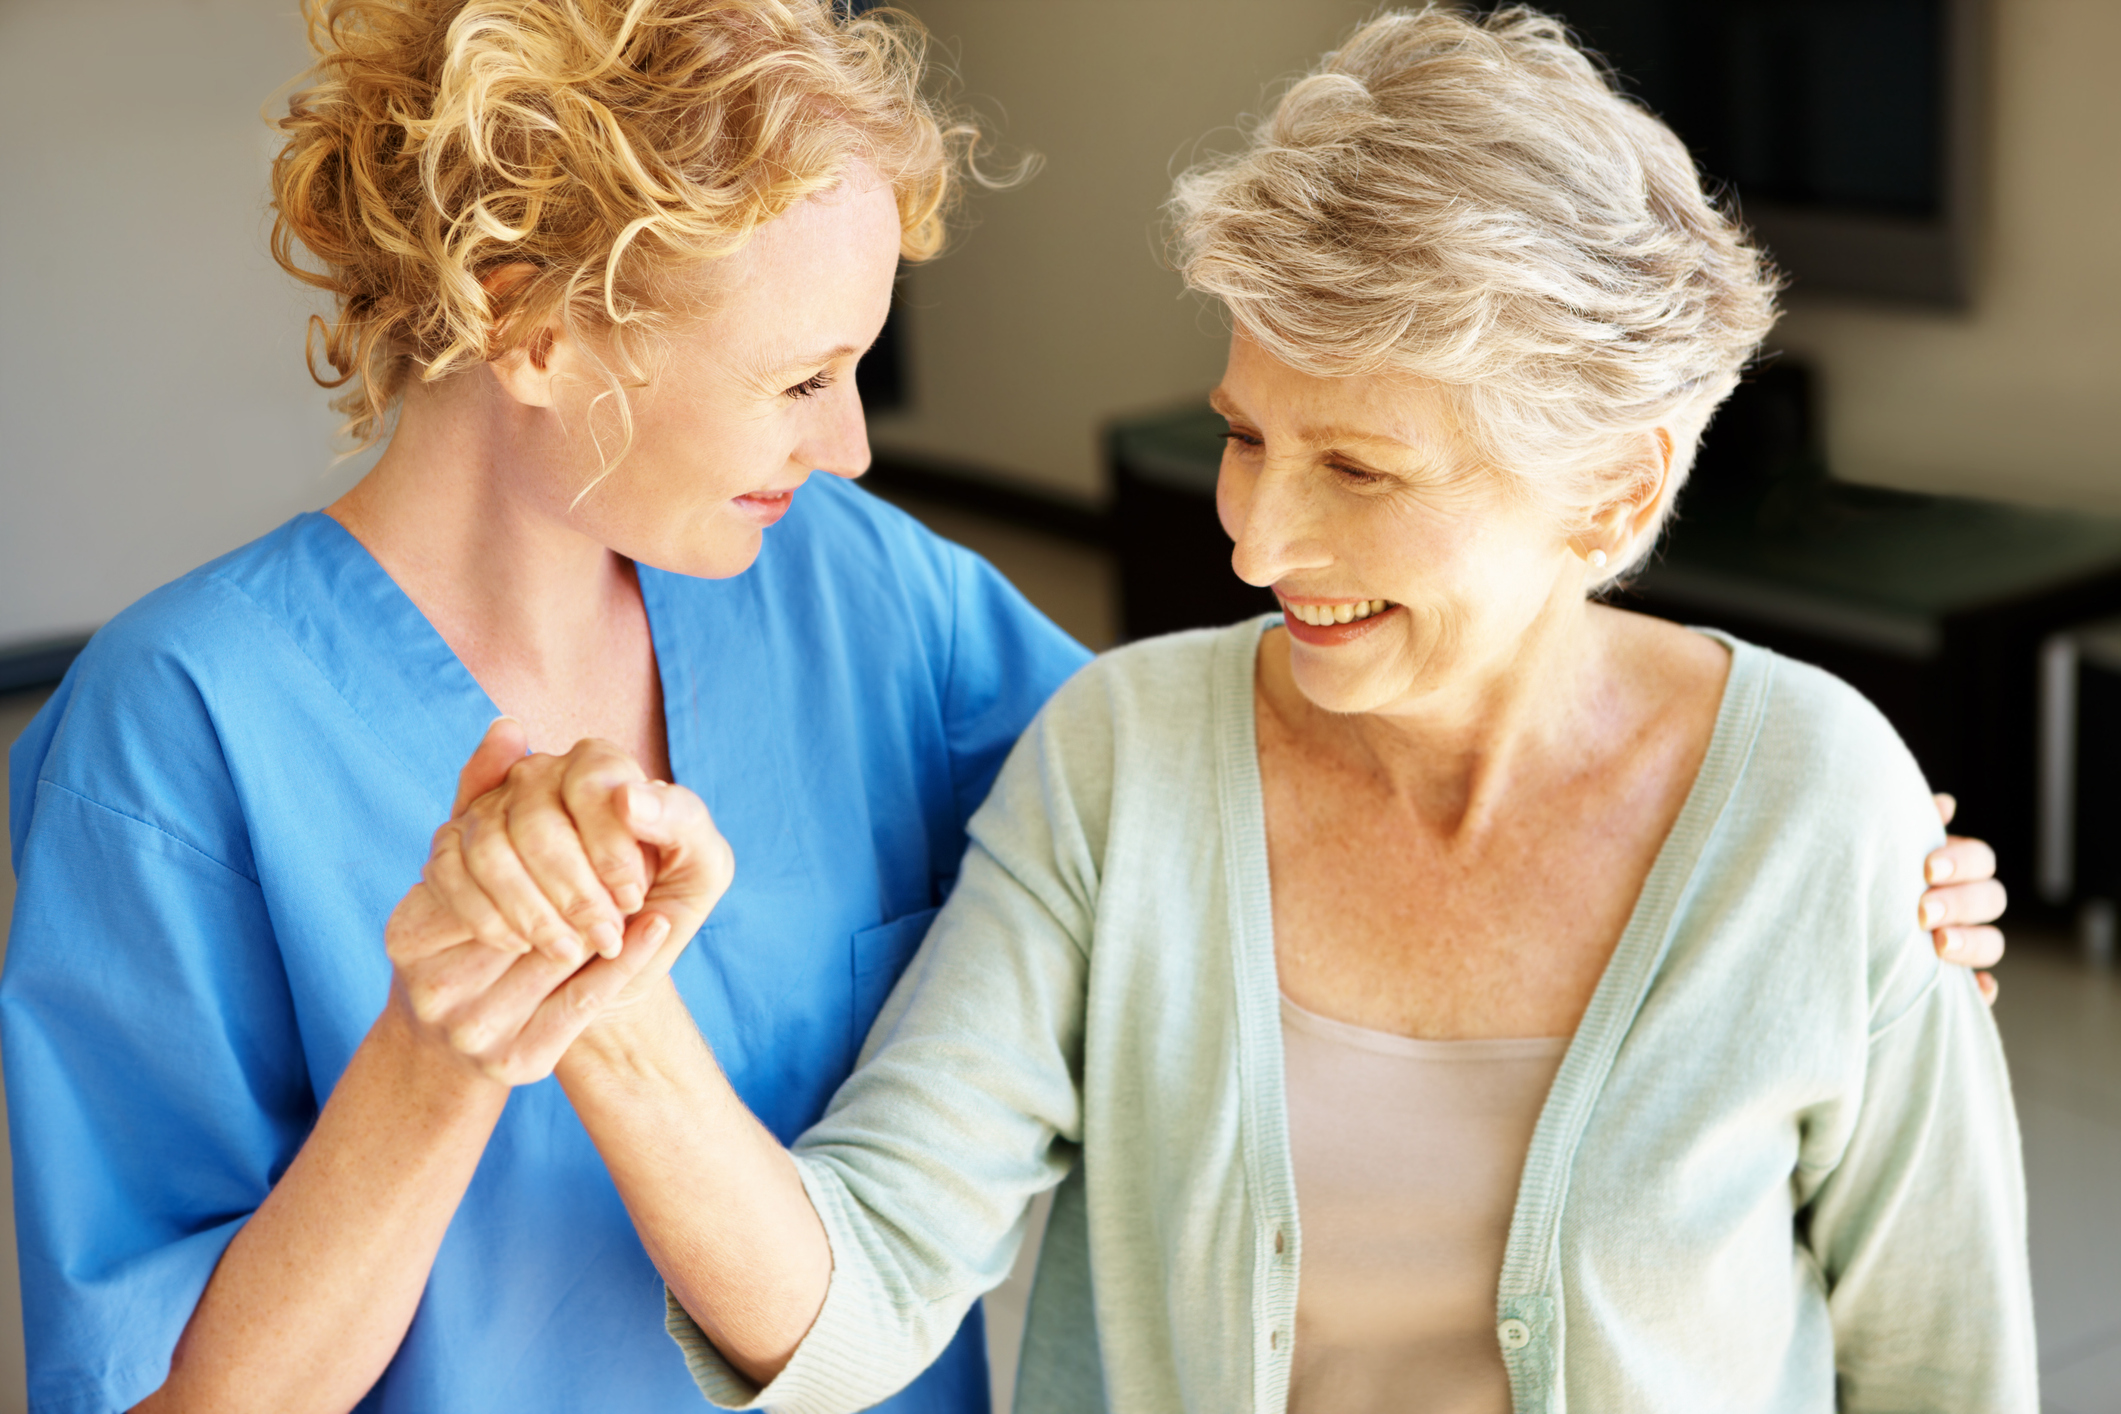 skilled nursing facility nurse caring for senior patient